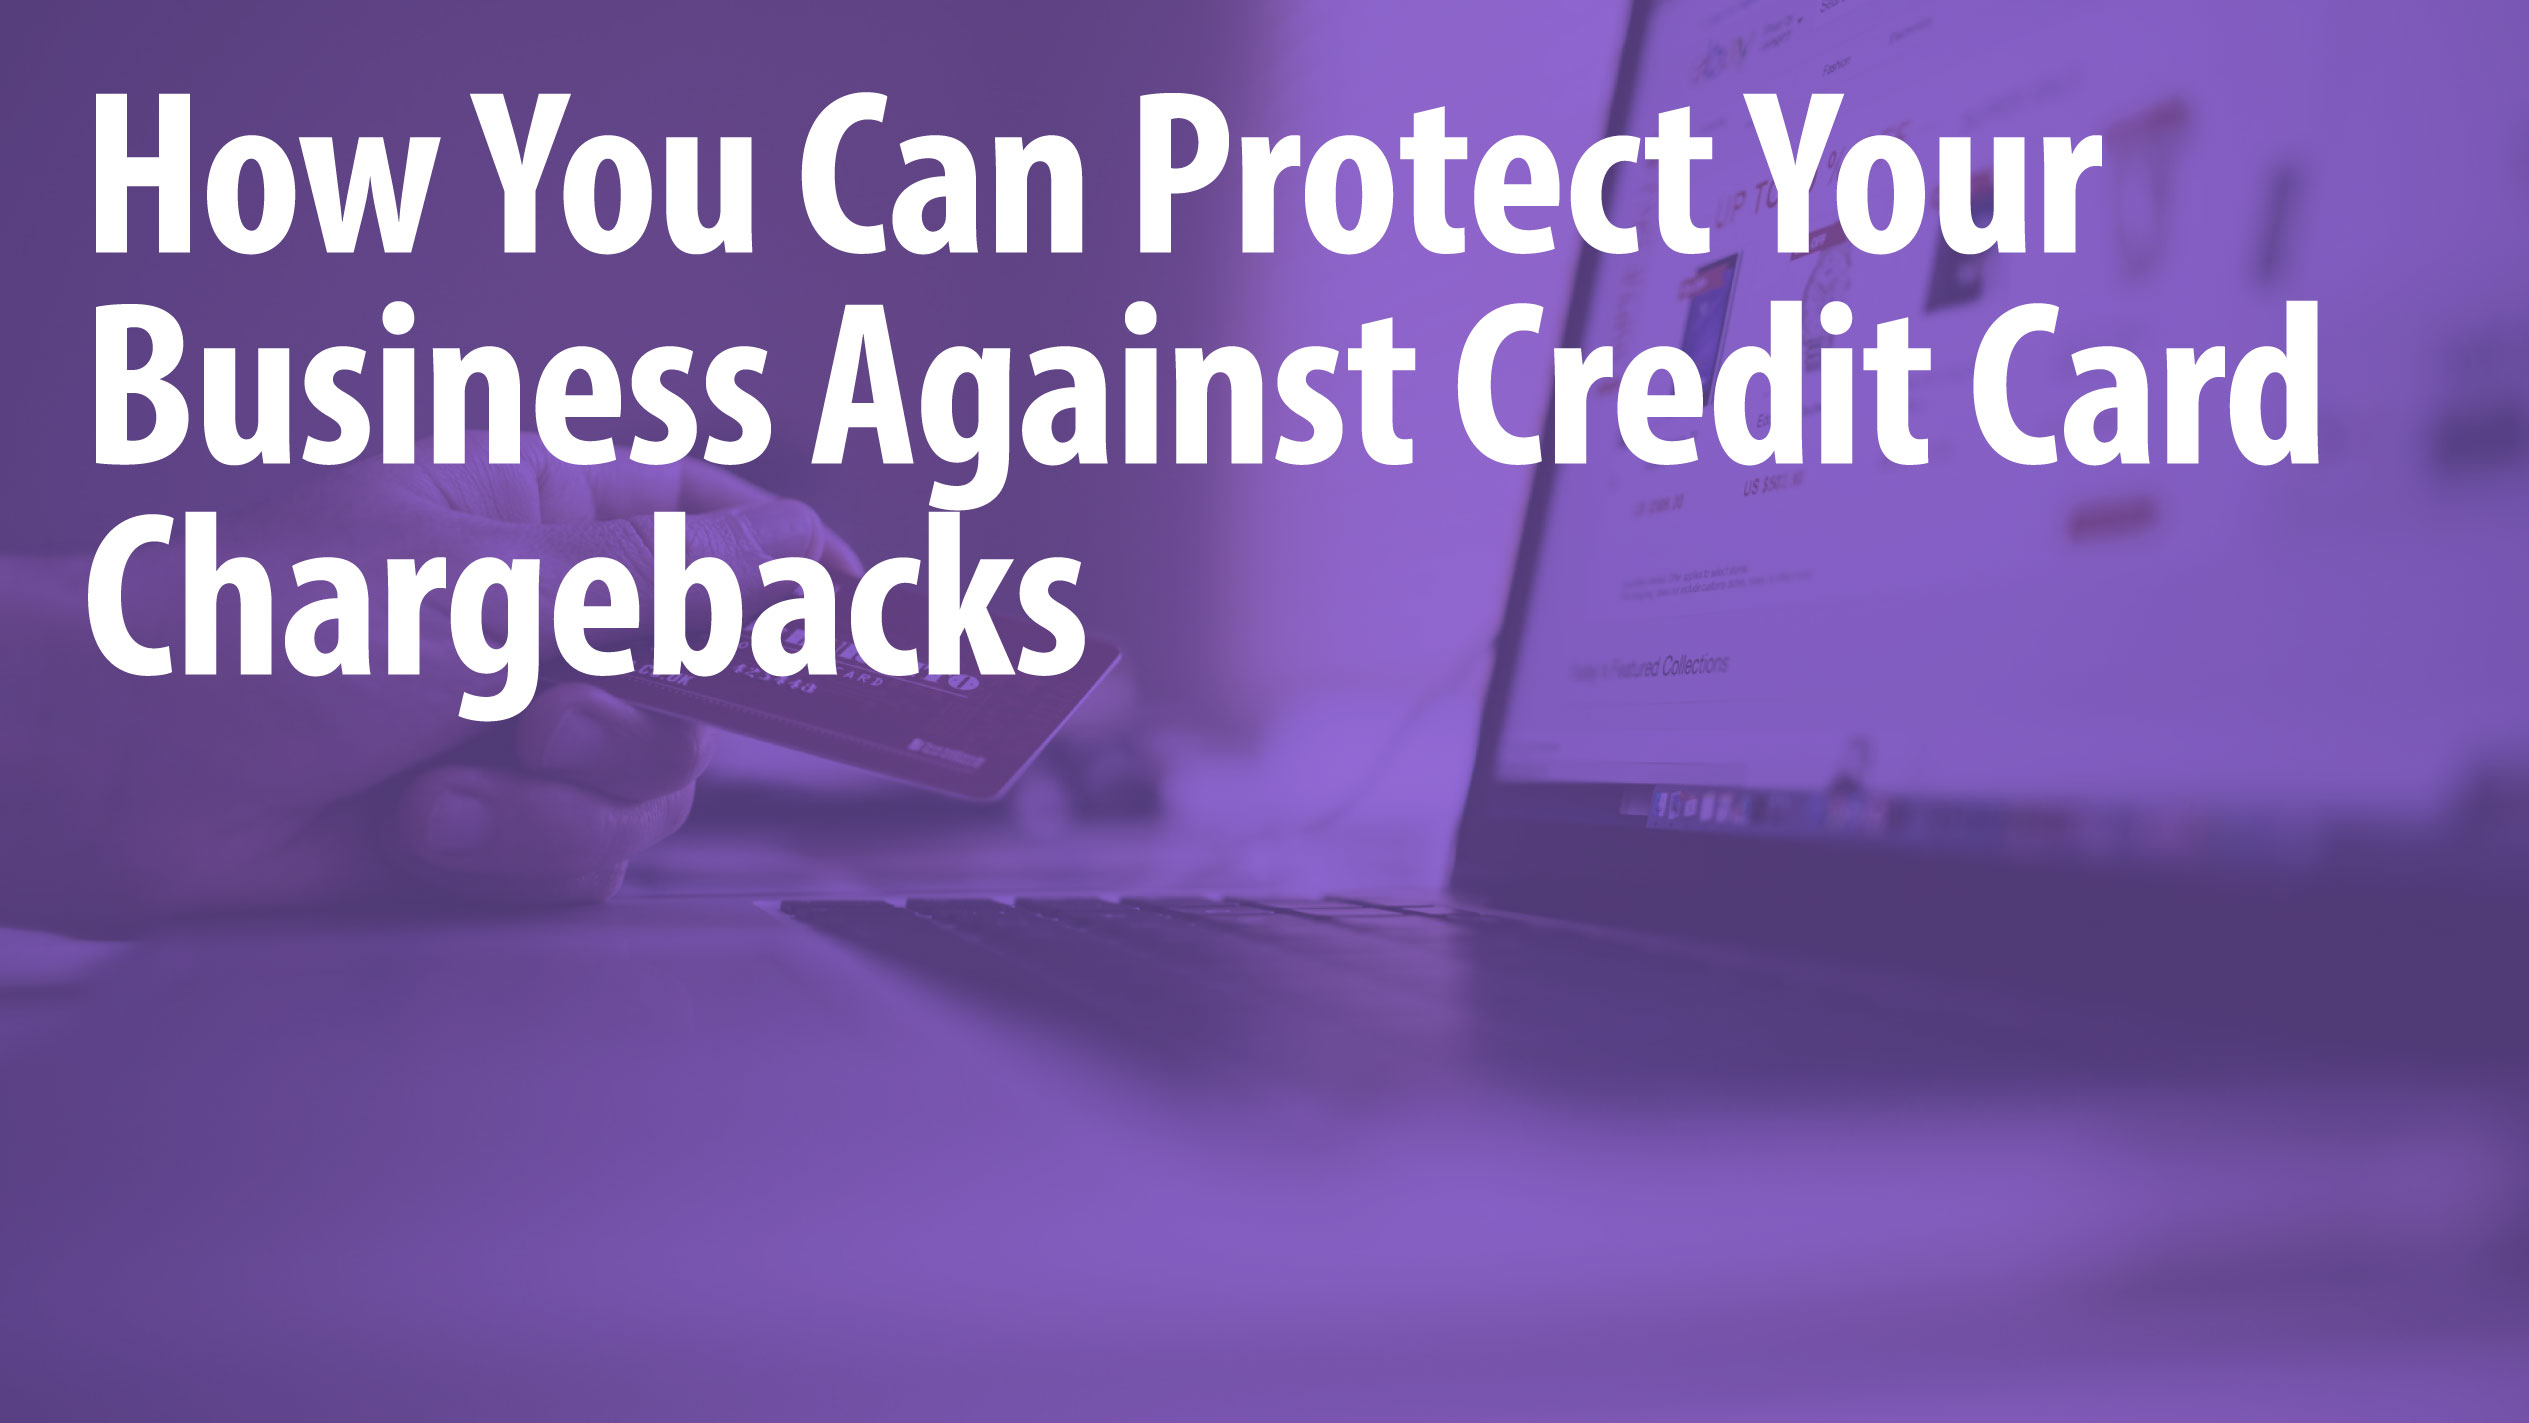 How To Protect Your Business Against Credit Card Chargebacks